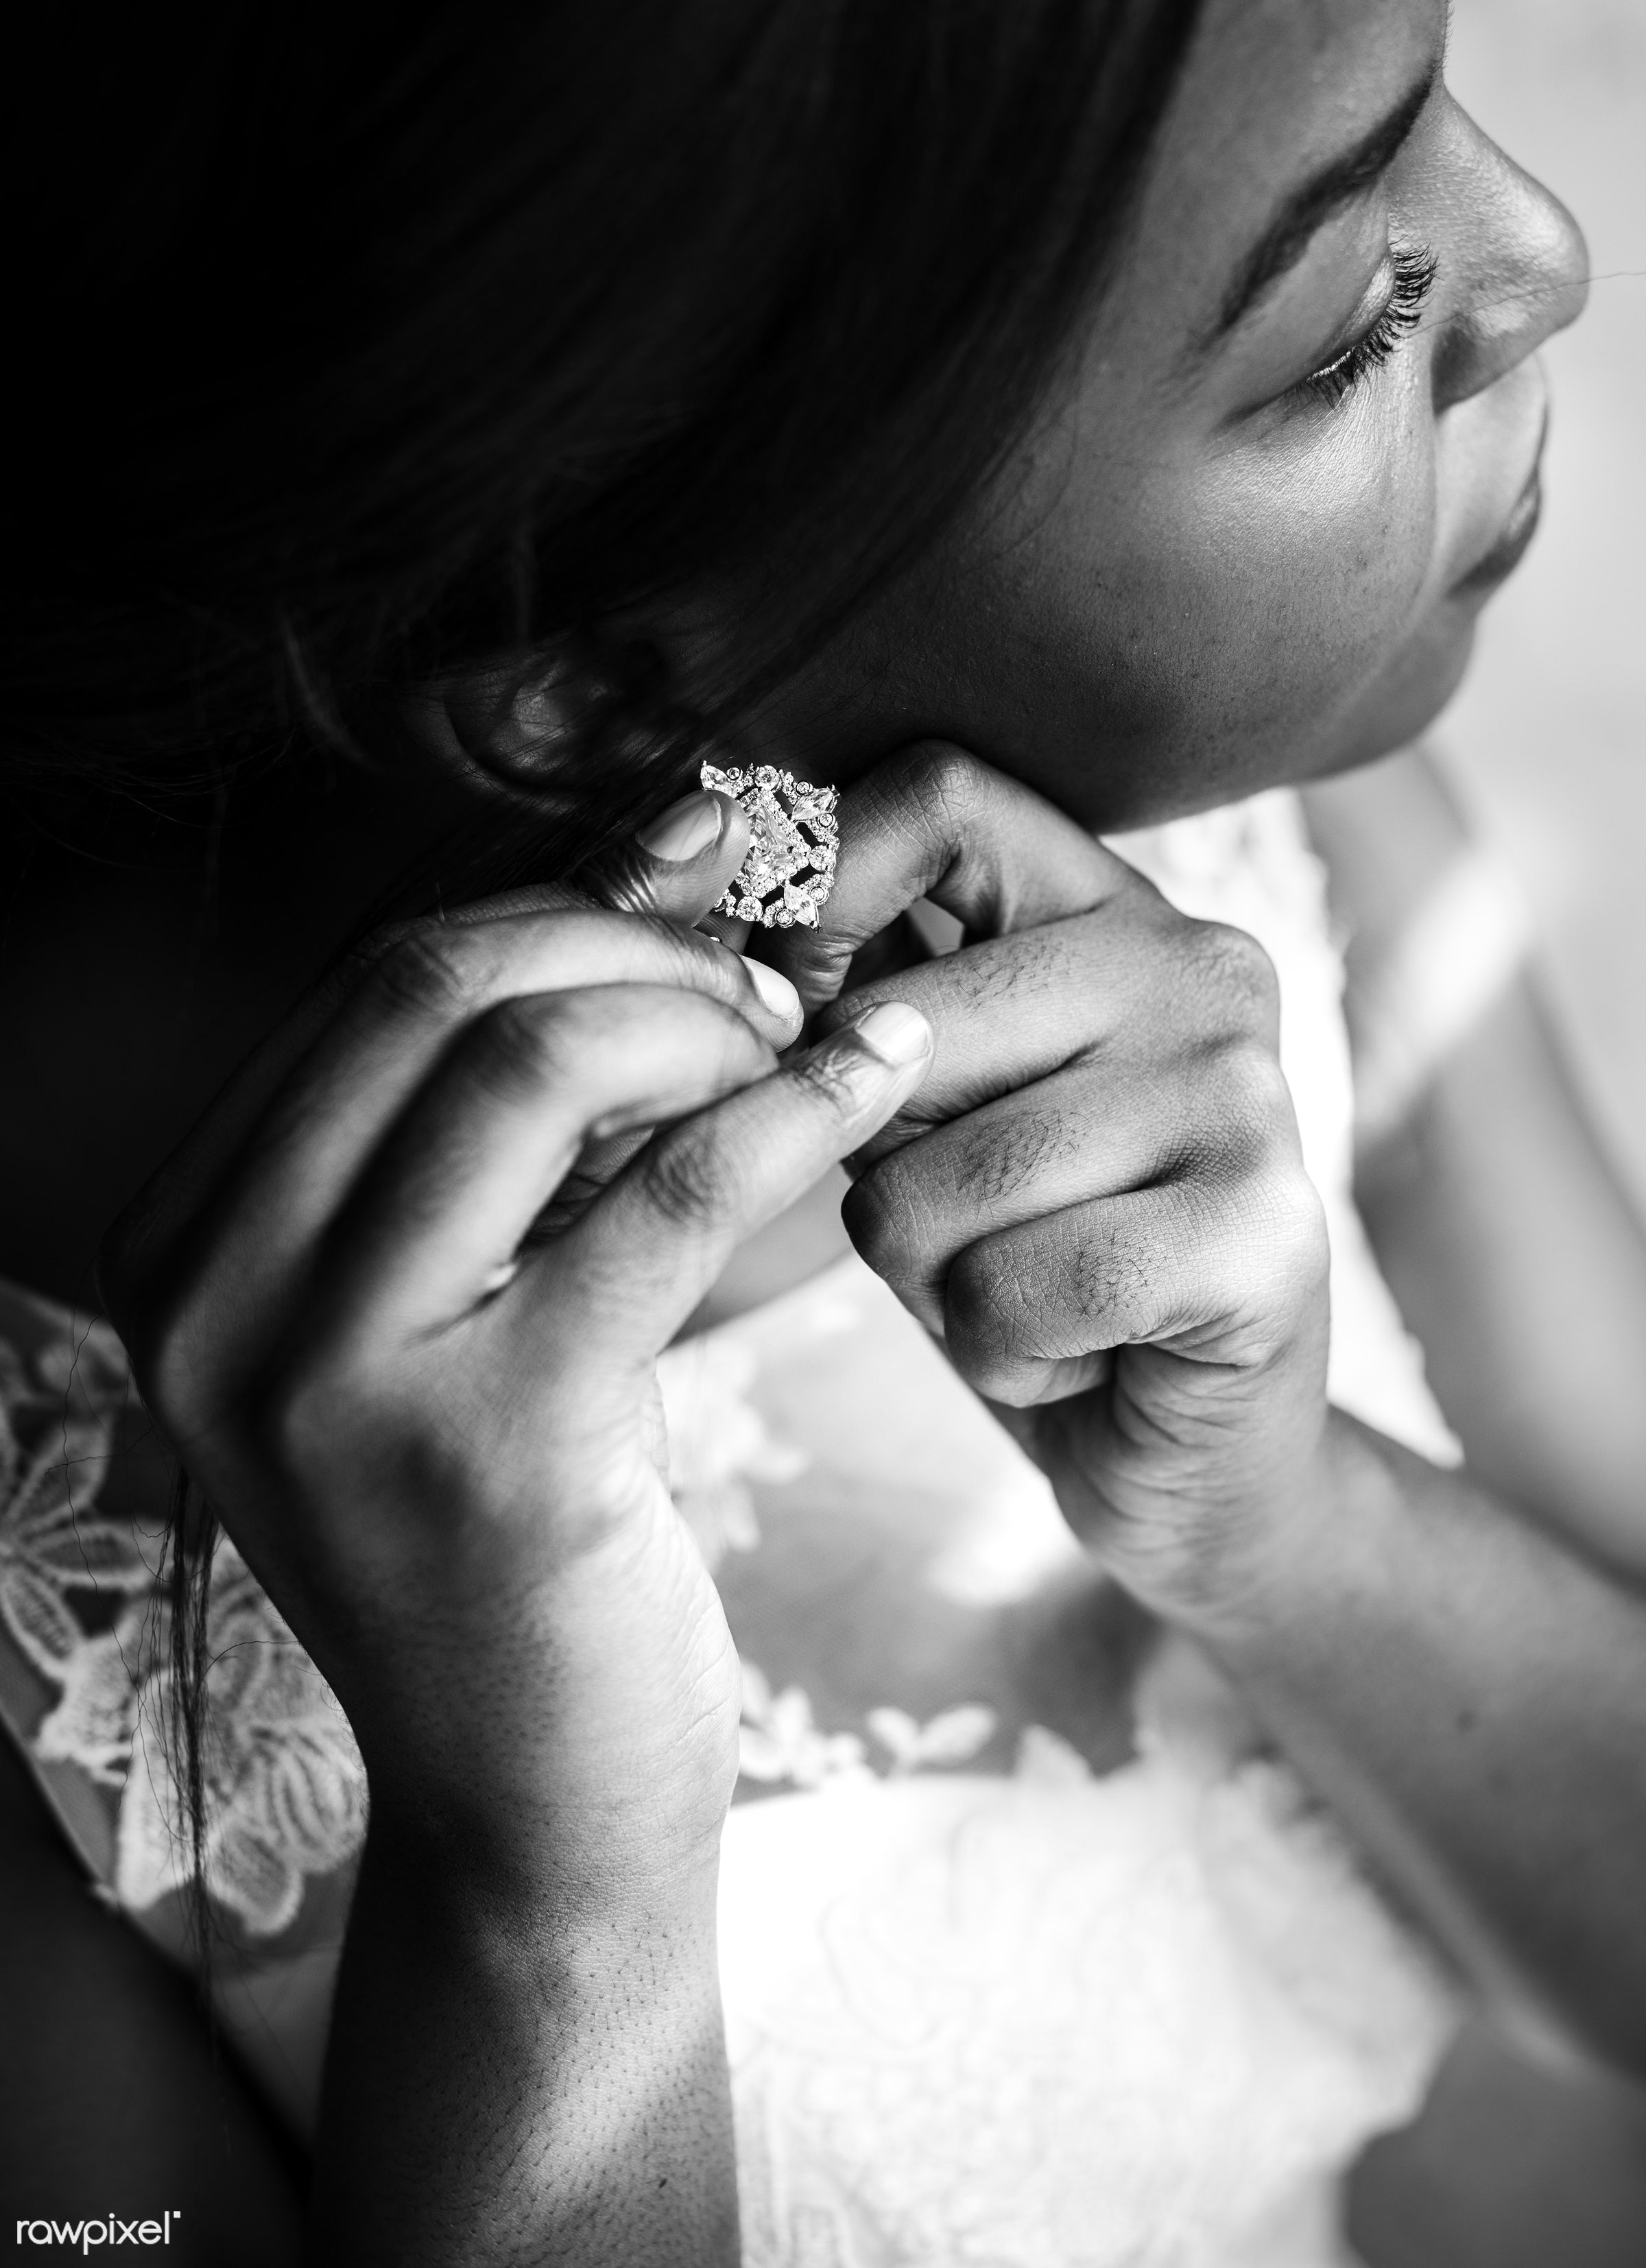 dress up, occasion, white dress, people, glamour, love, feminine, gown, bride, cheerful, marry, black, preparation, african...